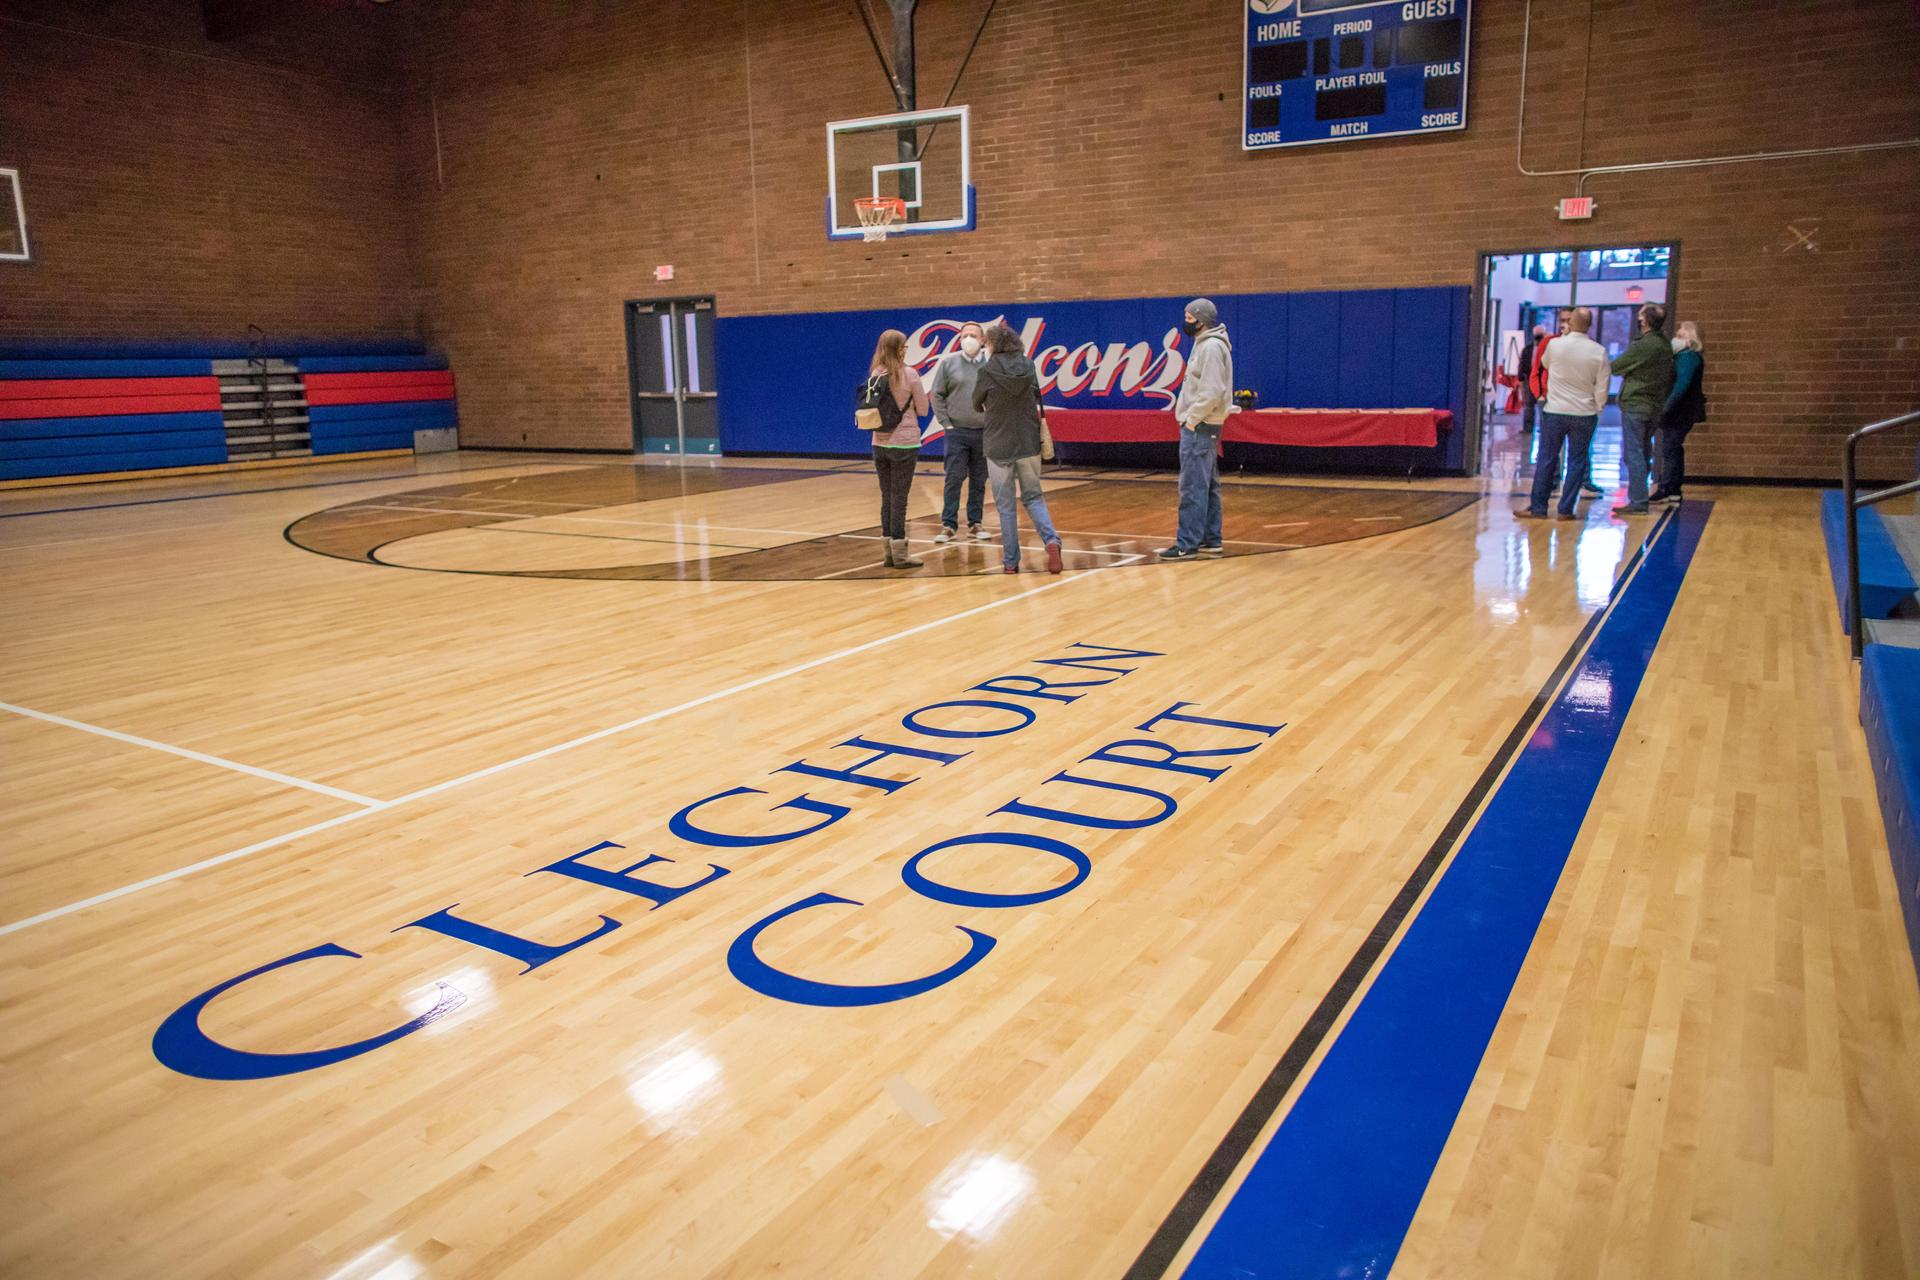 people gathered in the gym, titled the Cleghorn Court